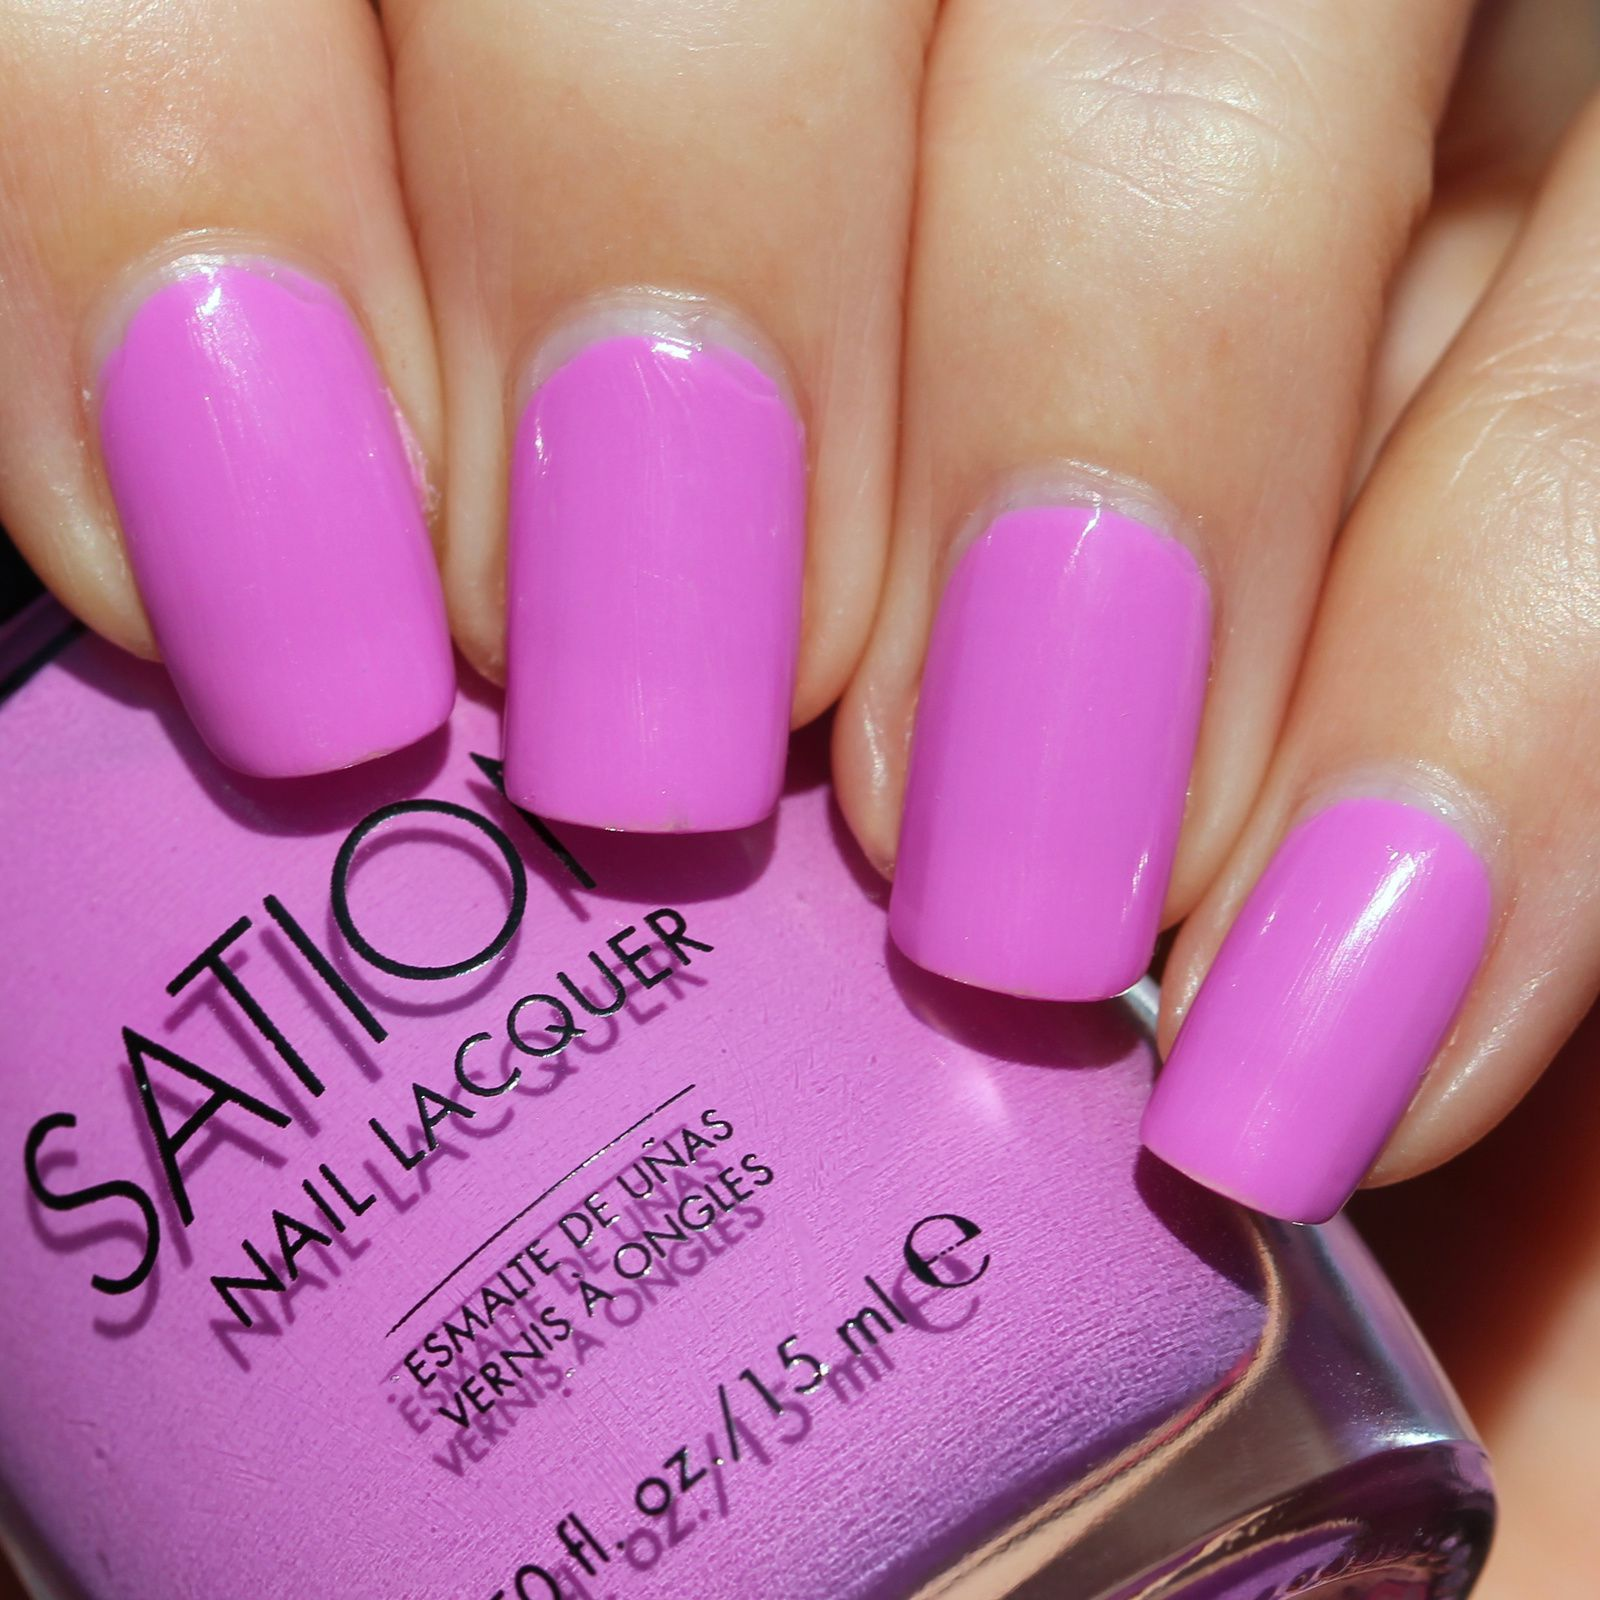 Duri Rejuvacote / Sation Love at First Lavender /  Sally Hansen Miracle Gel Top Coat